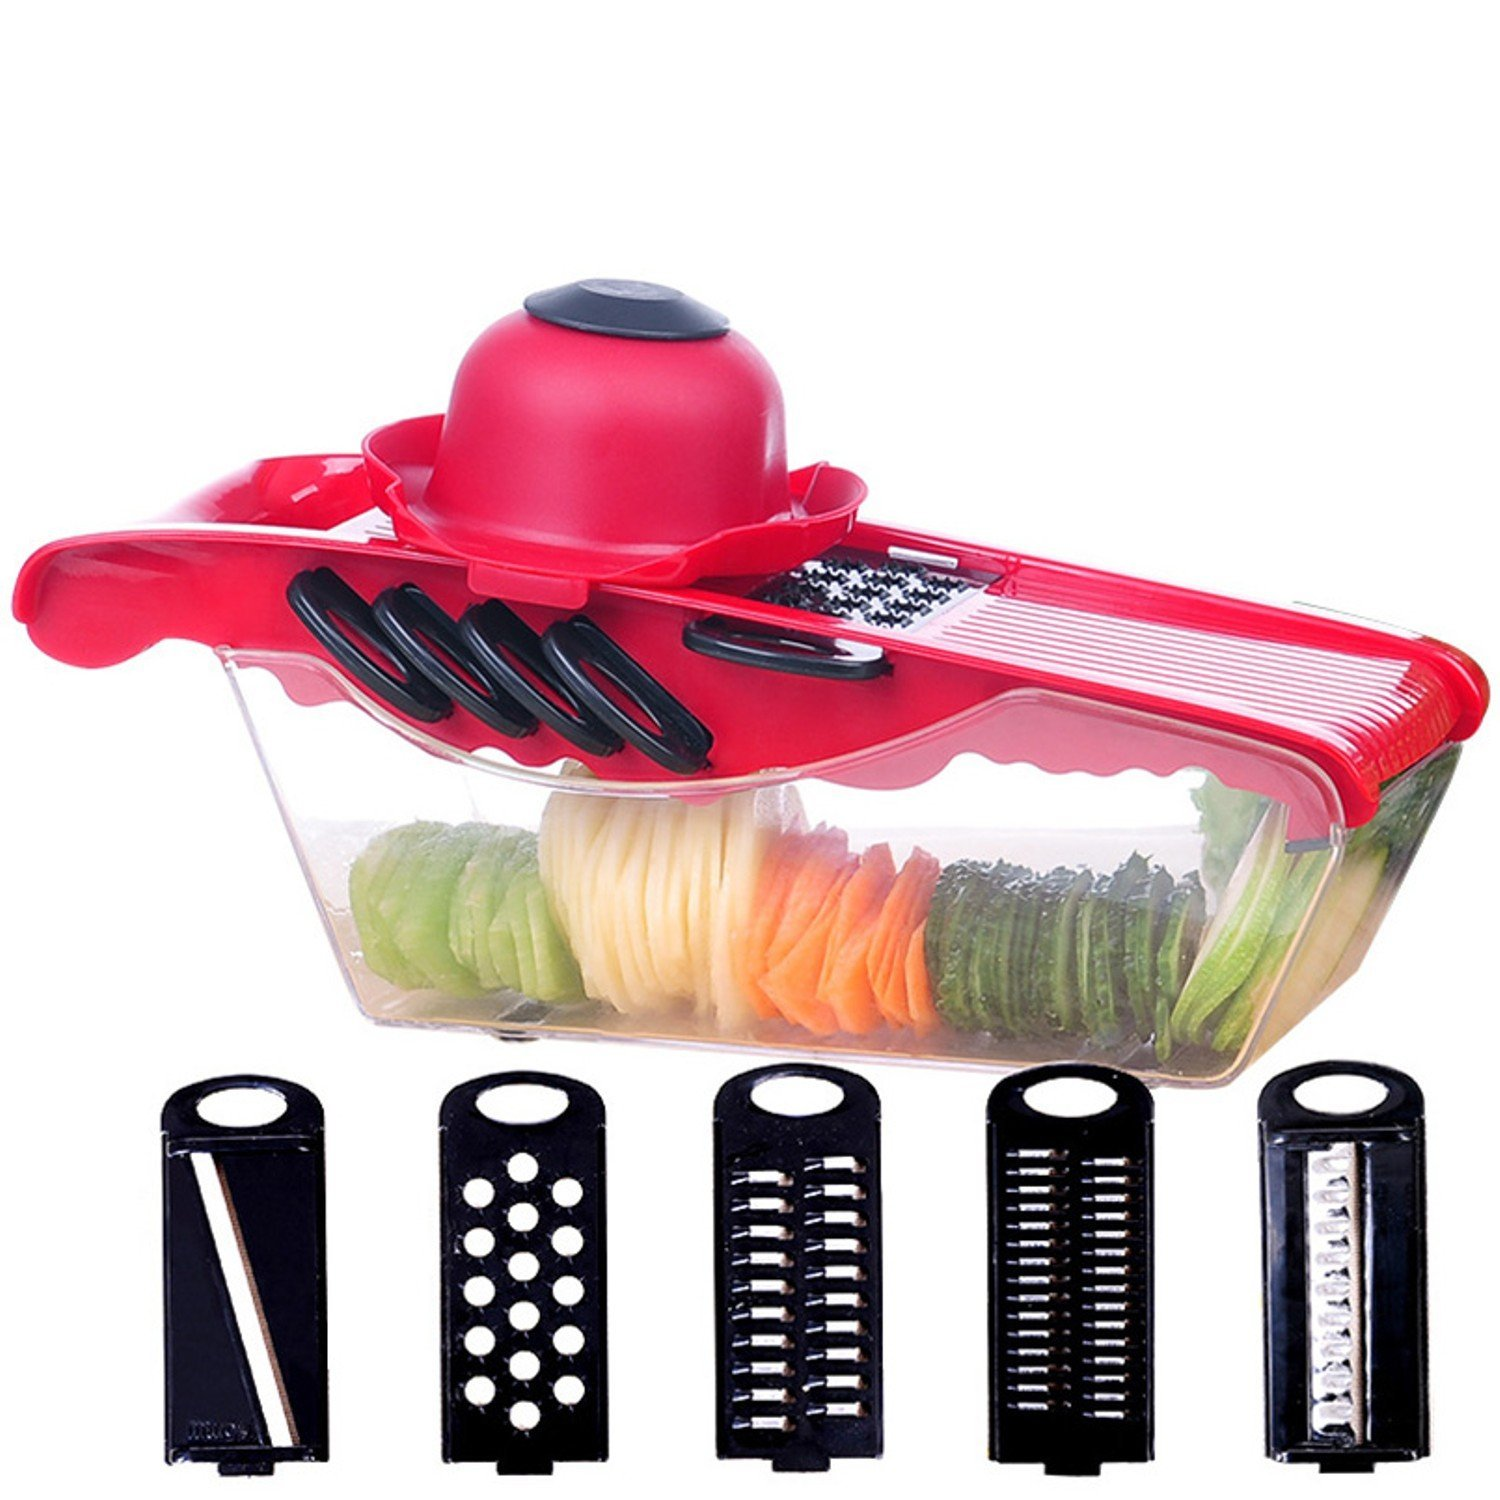 5in1 Manual Vegetable Cutter Slicers Garlic Presses Potato Graters Kitchen Accessories Shredding Machine